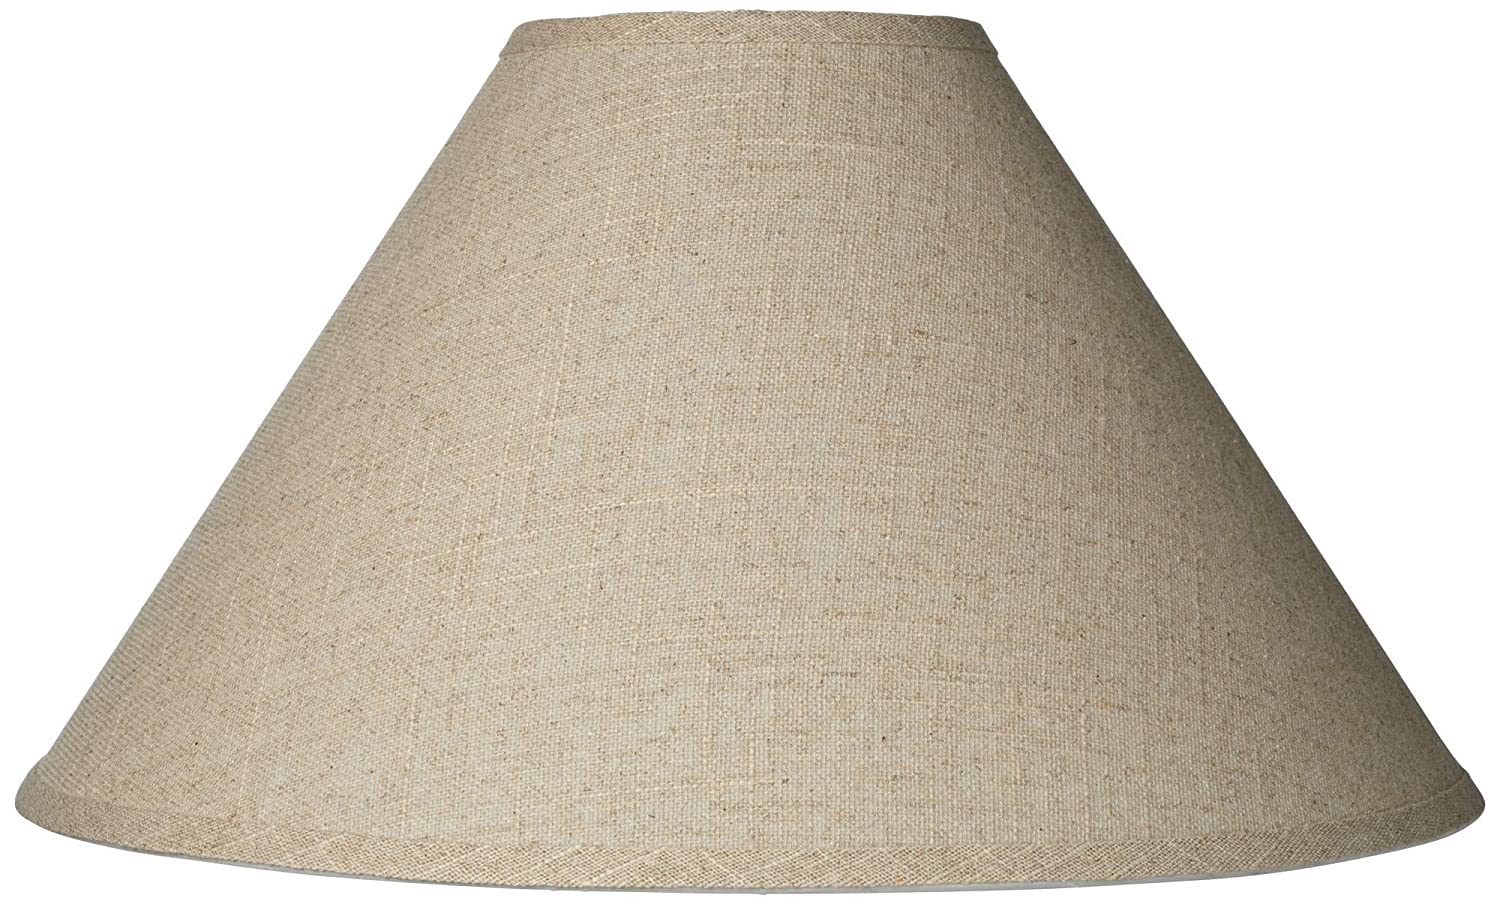 Burlap Empire Lamp Shade Rustic Fabric with Harp 6x19x12 (Spider) - Brentwood